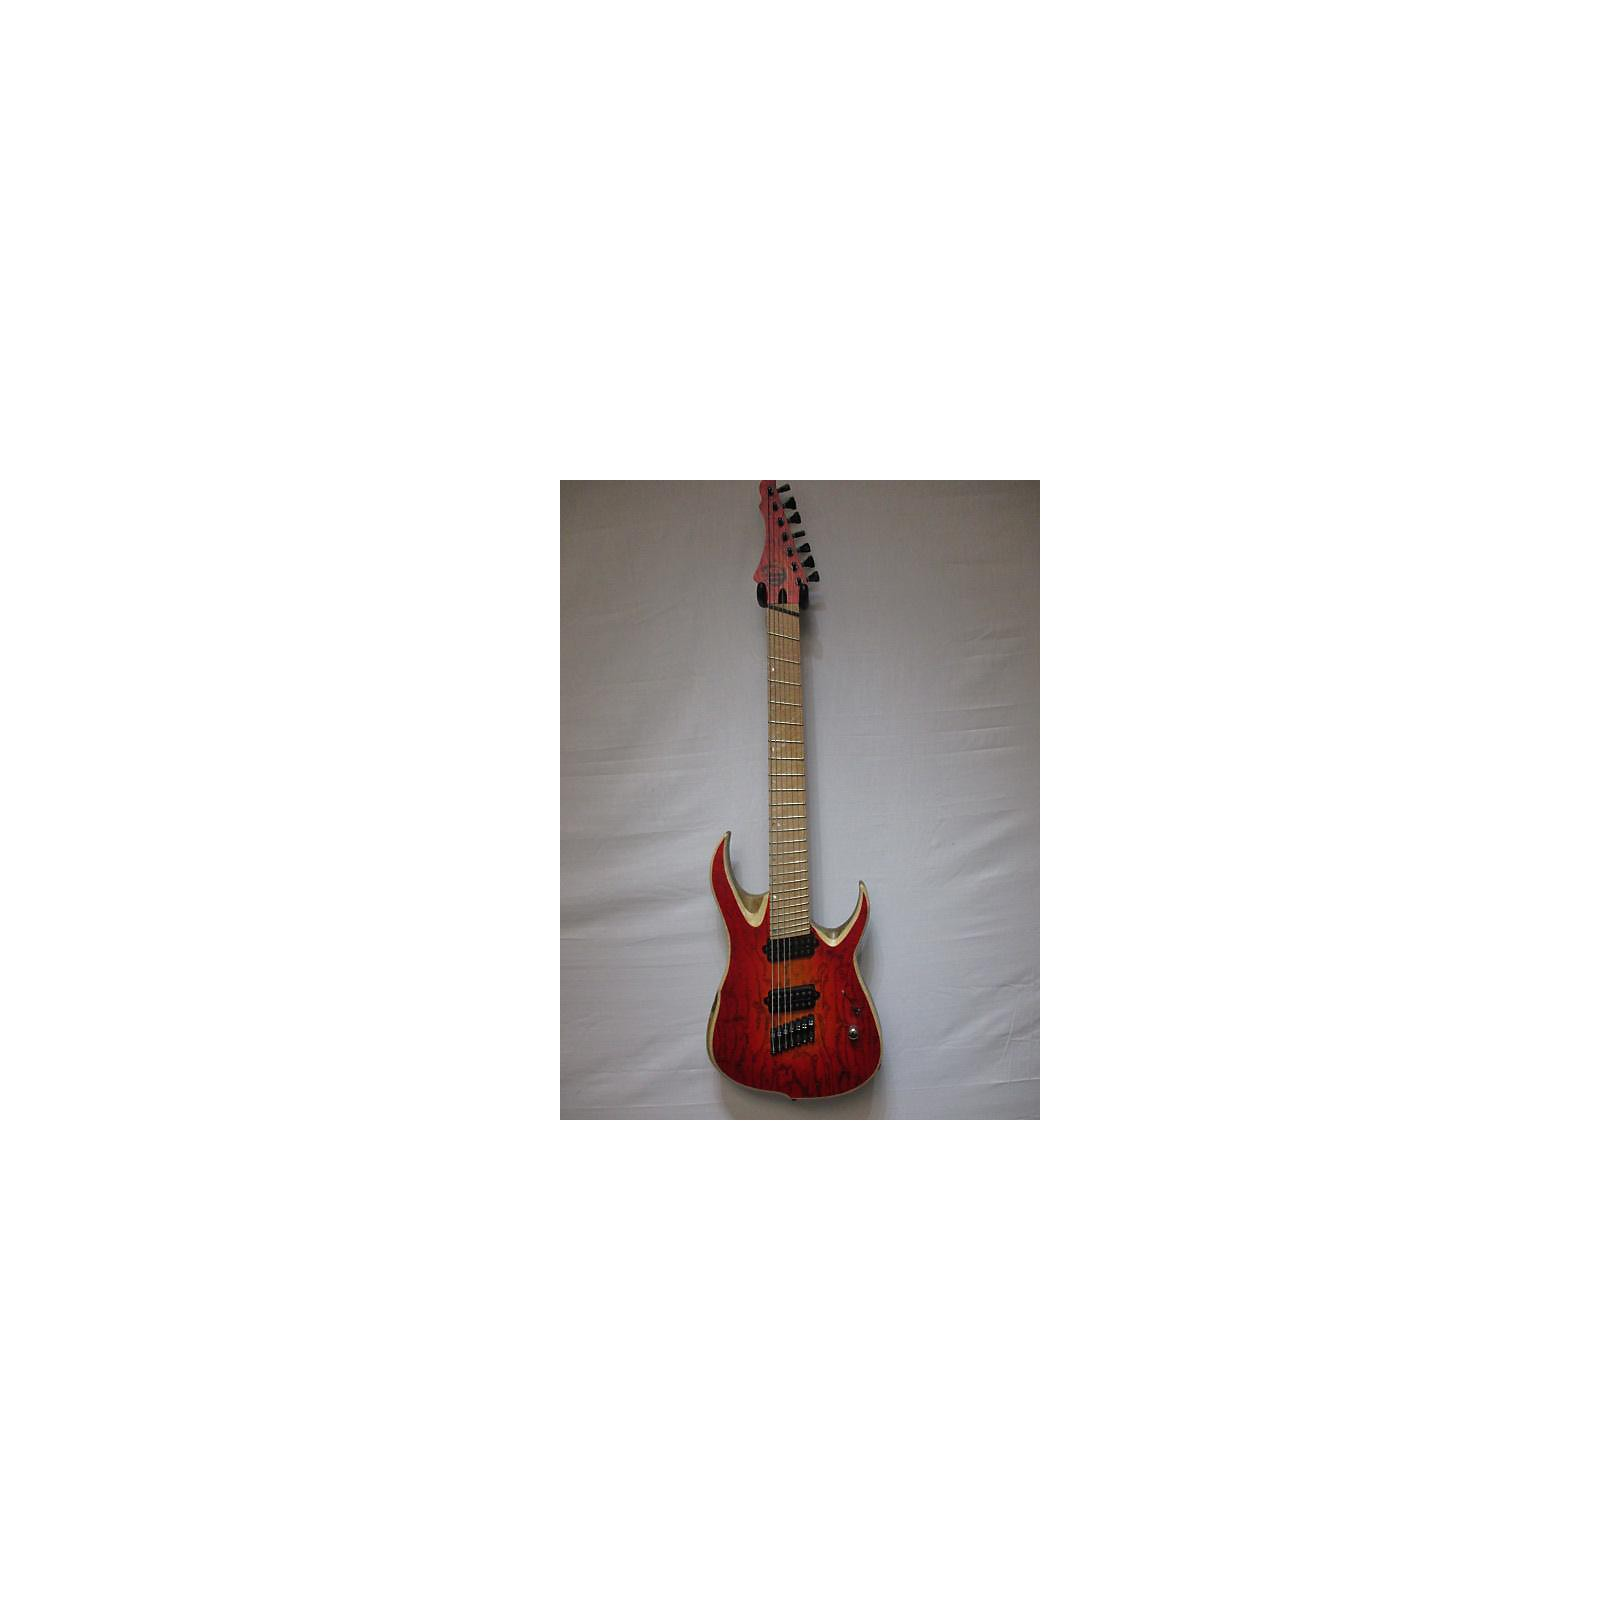 In Store Used Used Overload Multi Scale Raijin 7 Red Solid Body Electric Guitar